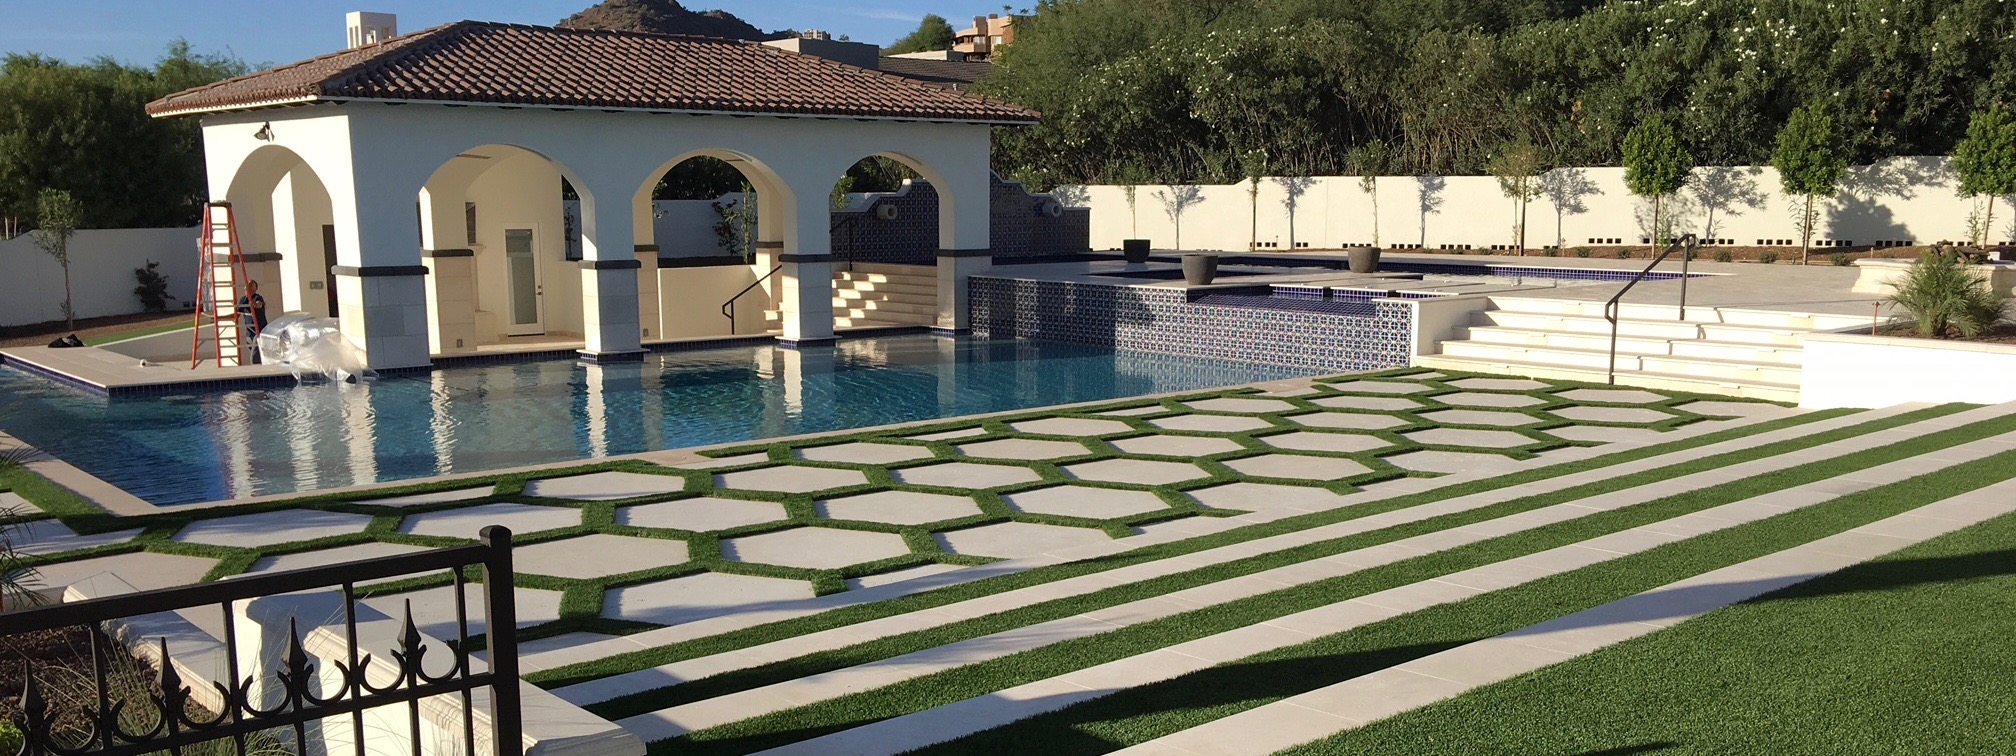 Pavers, Pool Coping, Custom Dark Color Design Accent using Manufactured Stone Panels